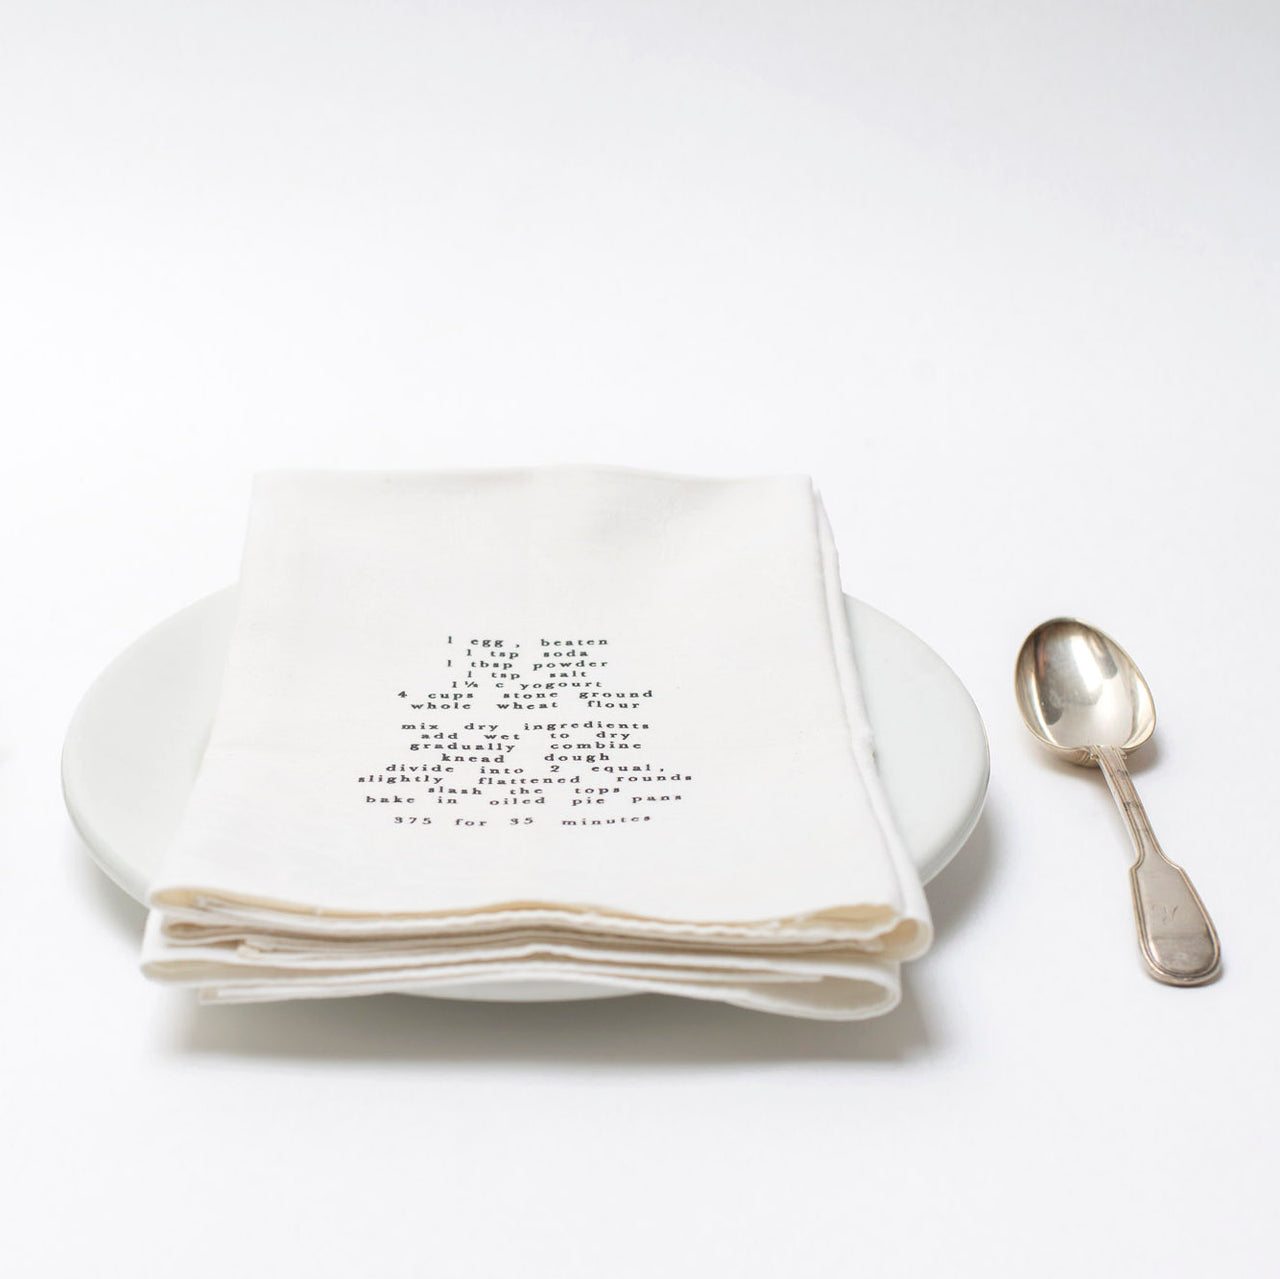 vintage damask napkins with irecipe